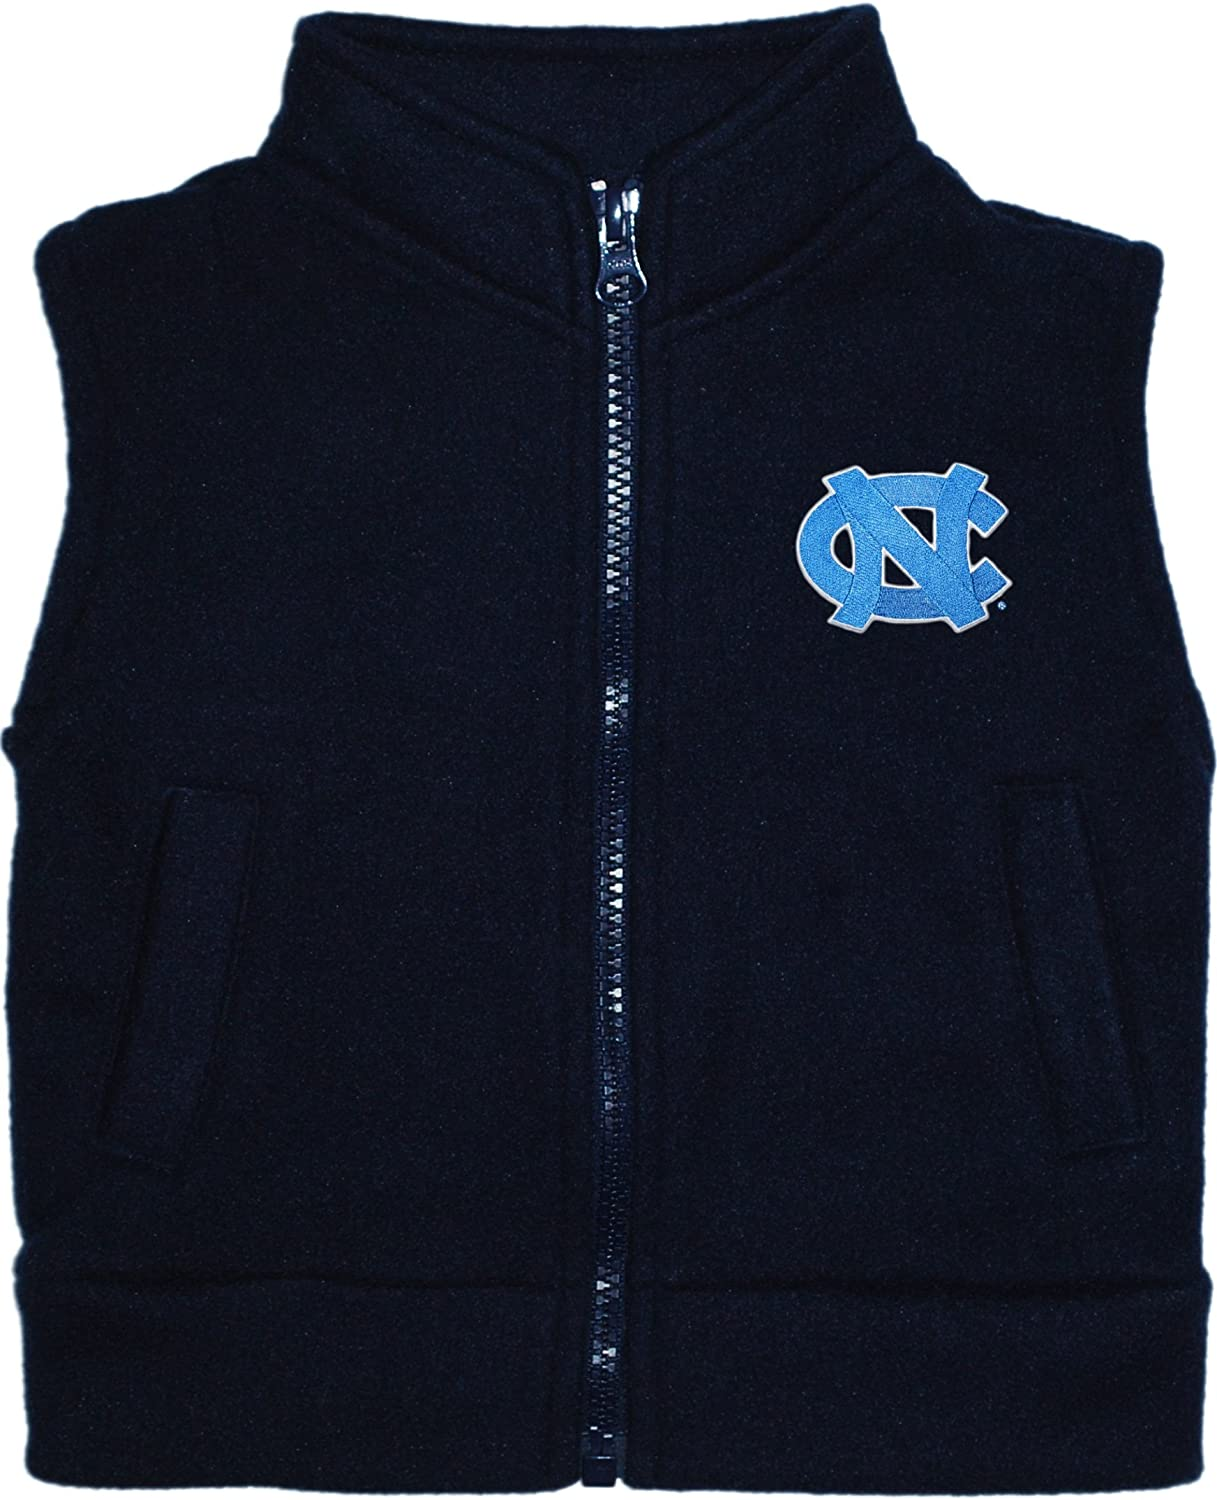 University of North Carolina Tar Heels Baby and Toddler Polar Fleece Vest